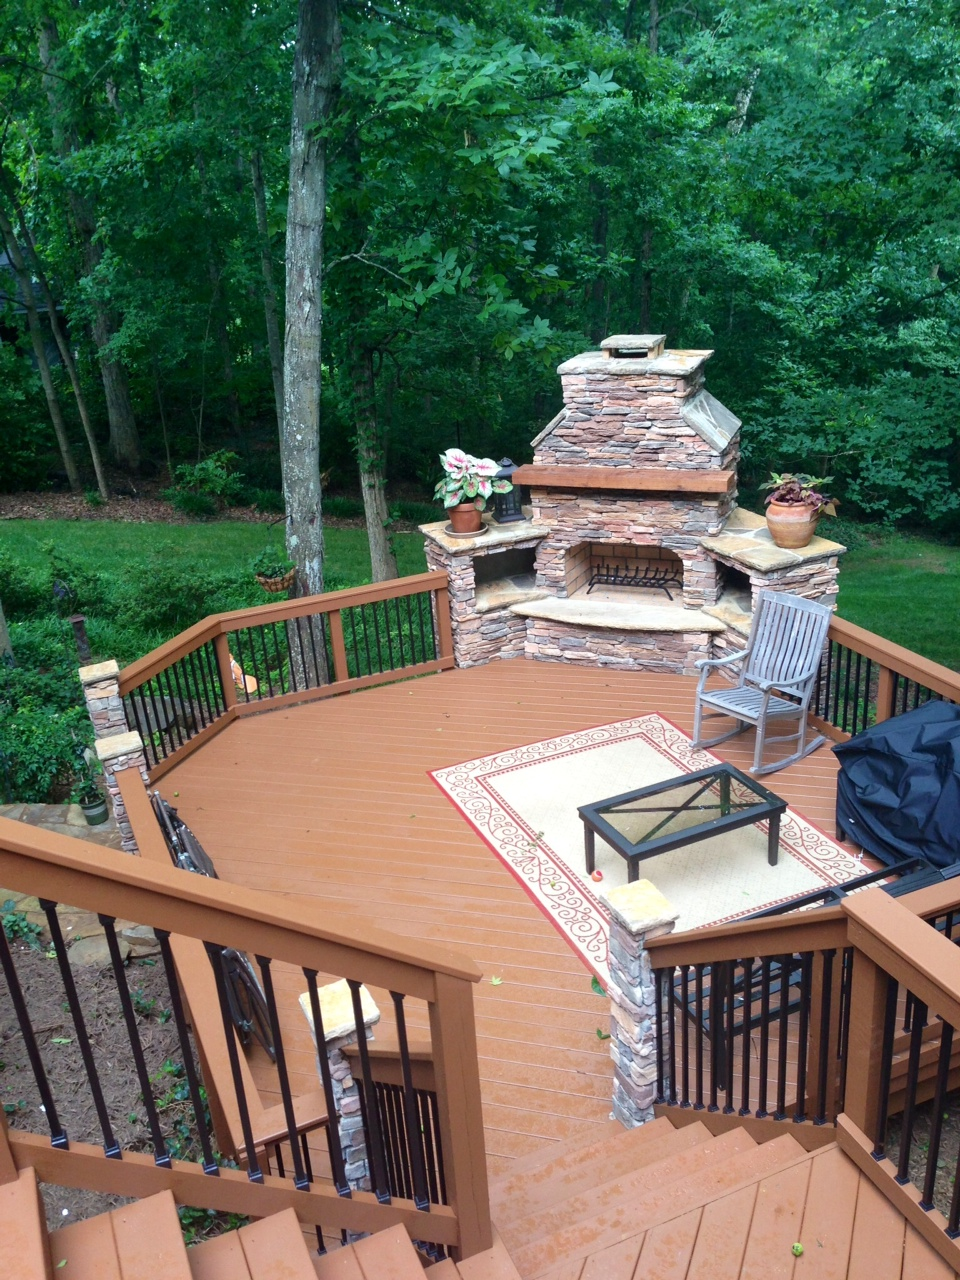 Trex decking archadeck of charlotte unique deck with multiple levels and an outdoor fireplace in south charlotte by archadeck baanklon Images